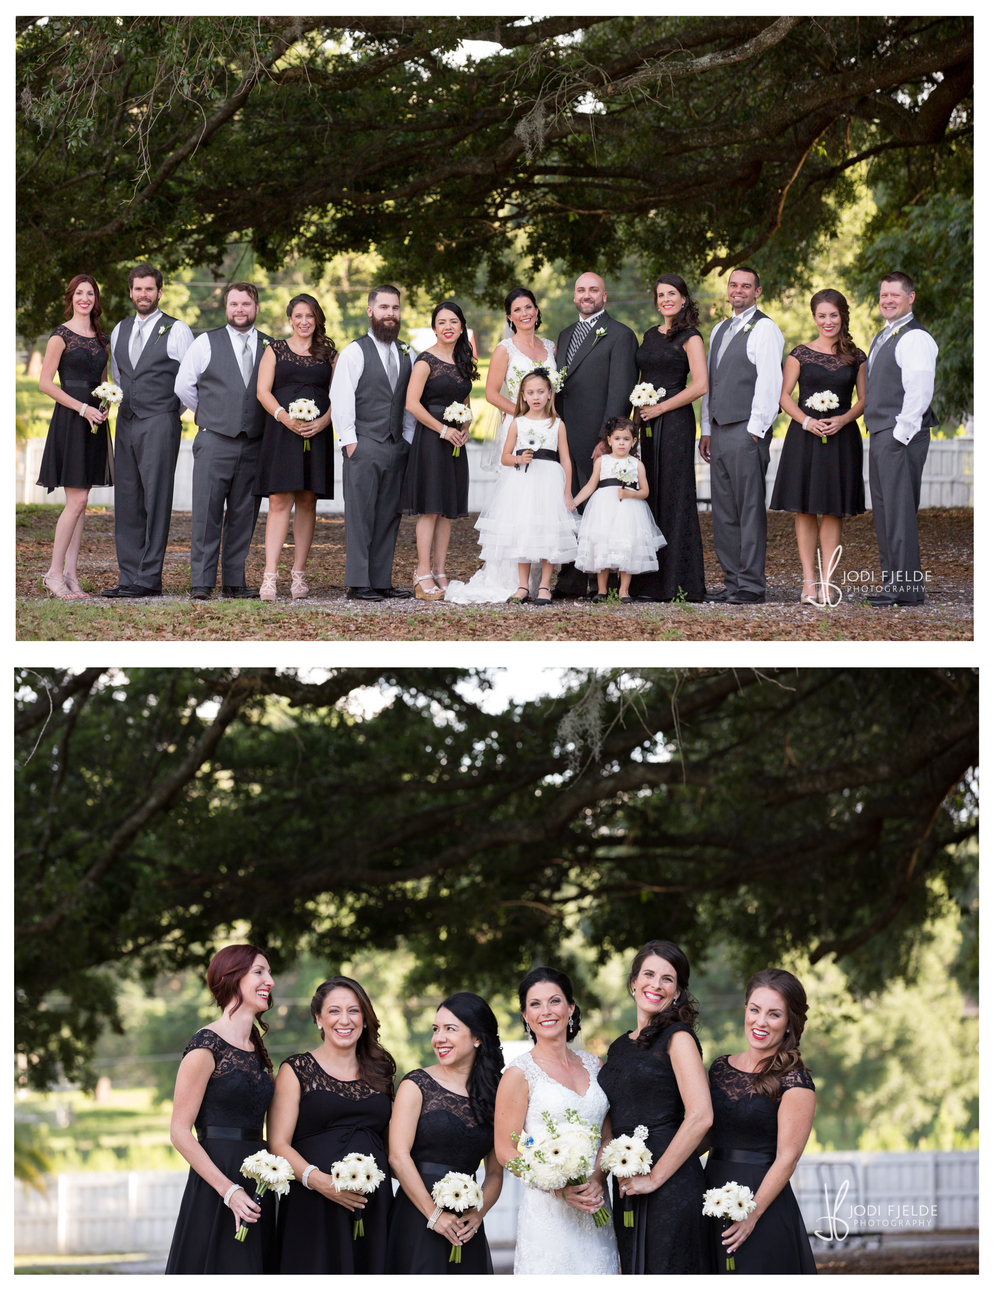 Highland_Manor_Apopka_Florida_wedding_Jackie_&_Tim_photography_jodi_Fjelde_photography-21.jpg